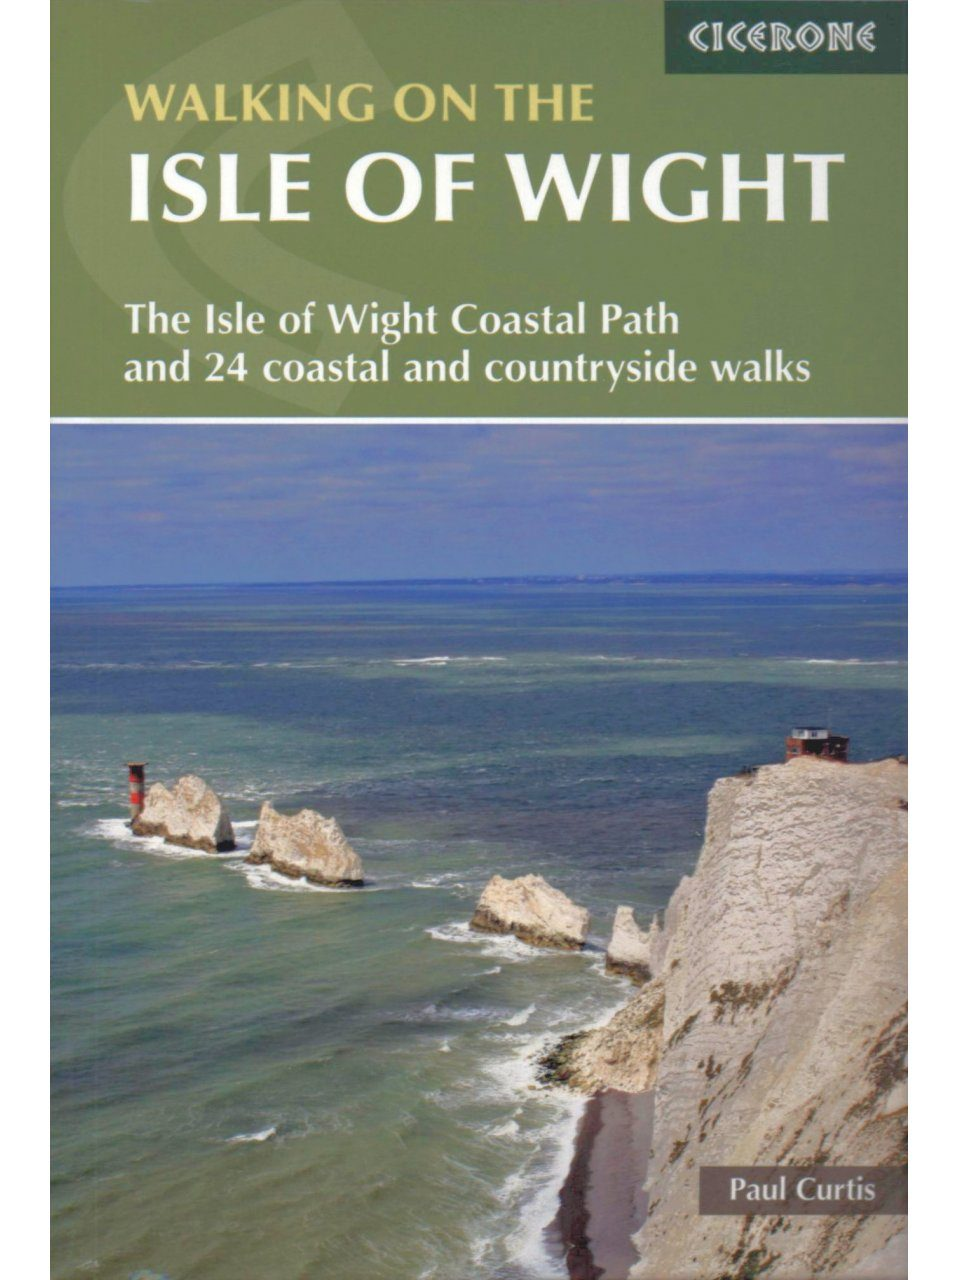 Cicerone Guides: Walking on the Isle of Wight